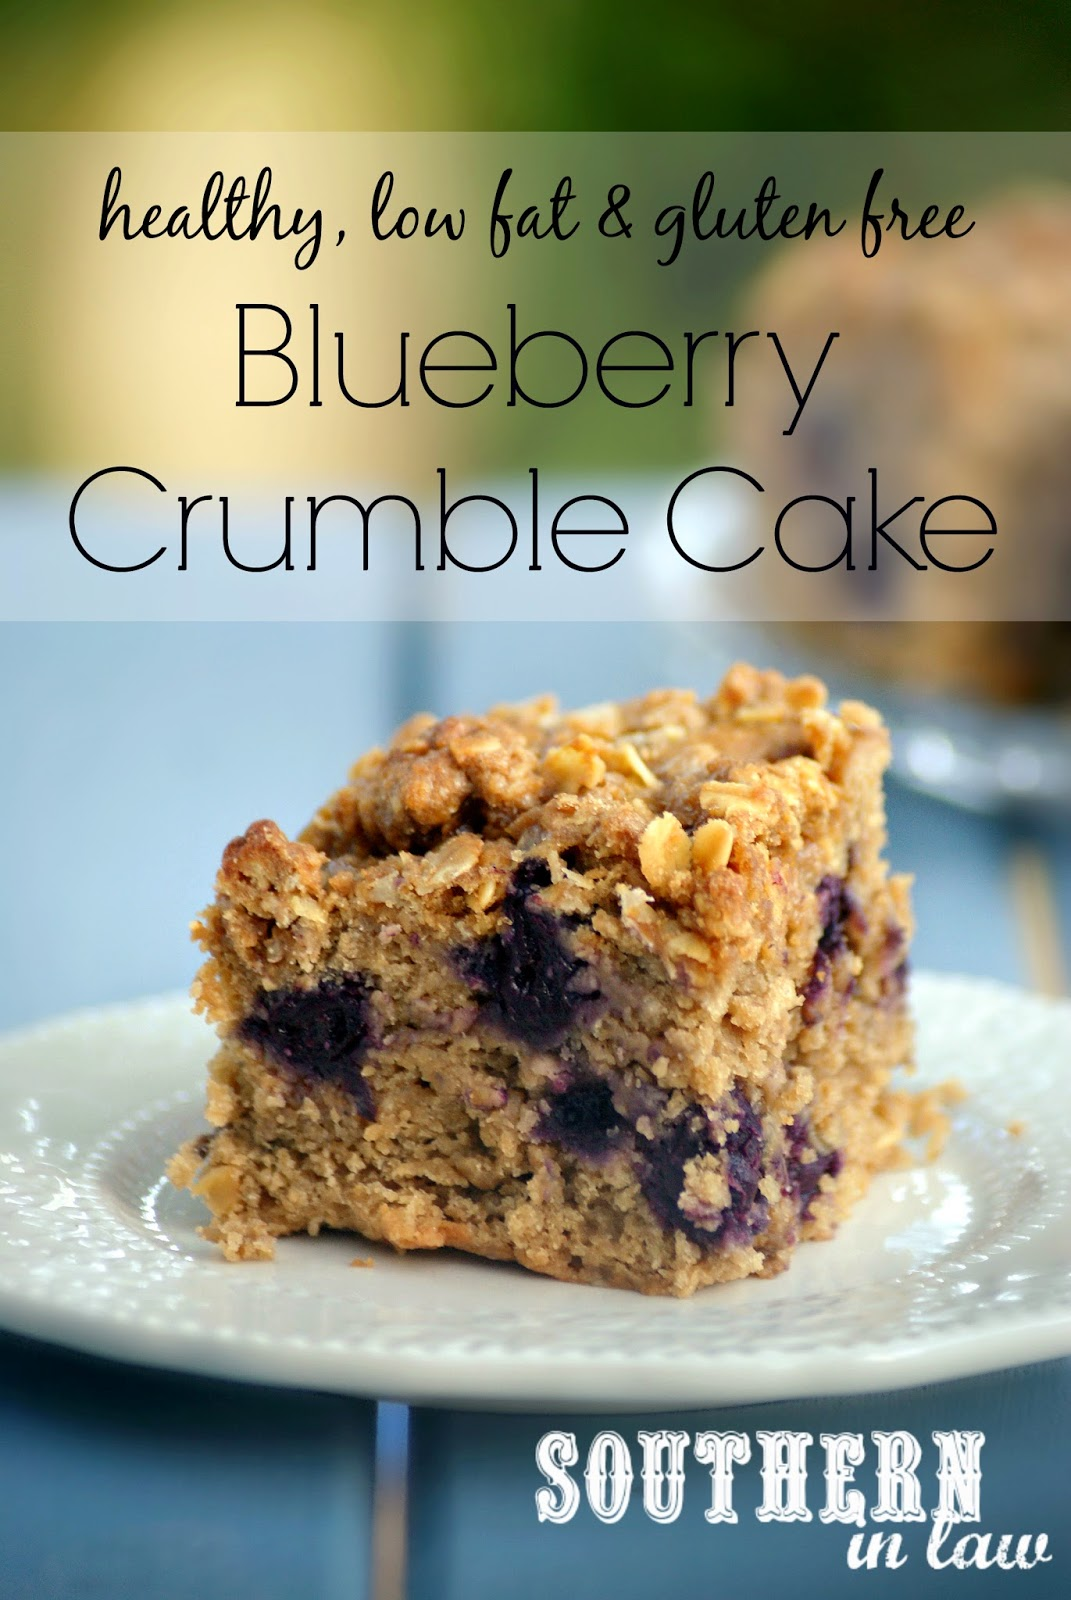 Southern In Law: Recipe: Healthy Blueberry Crumble Cake